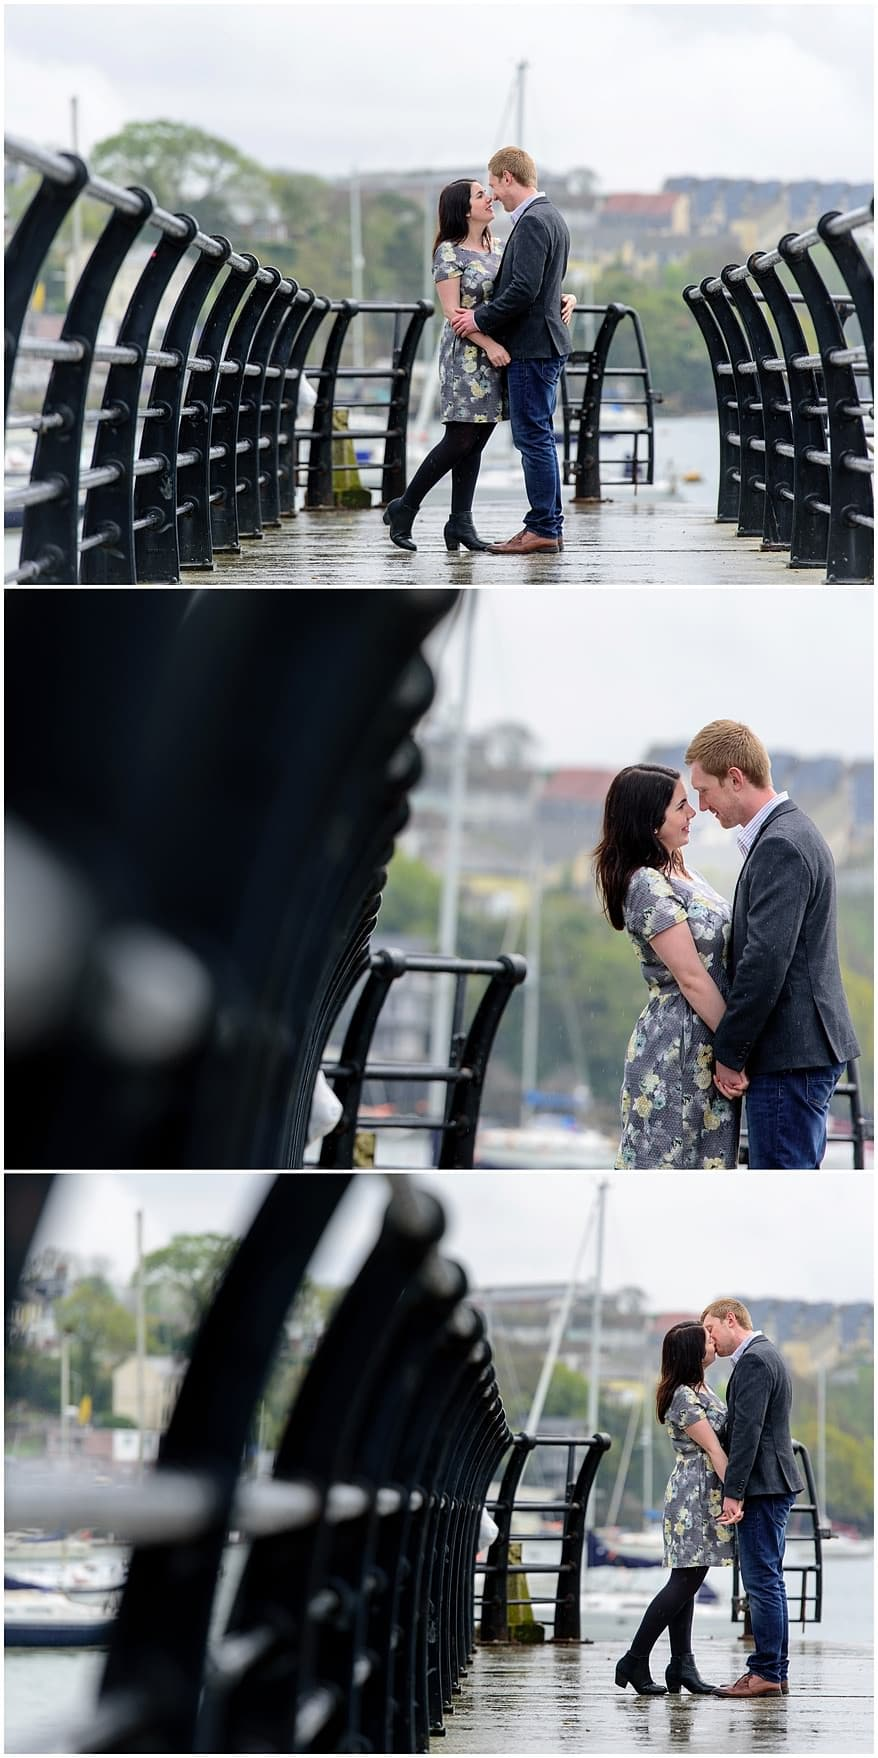 Engagement shoot on the pier in Saltash